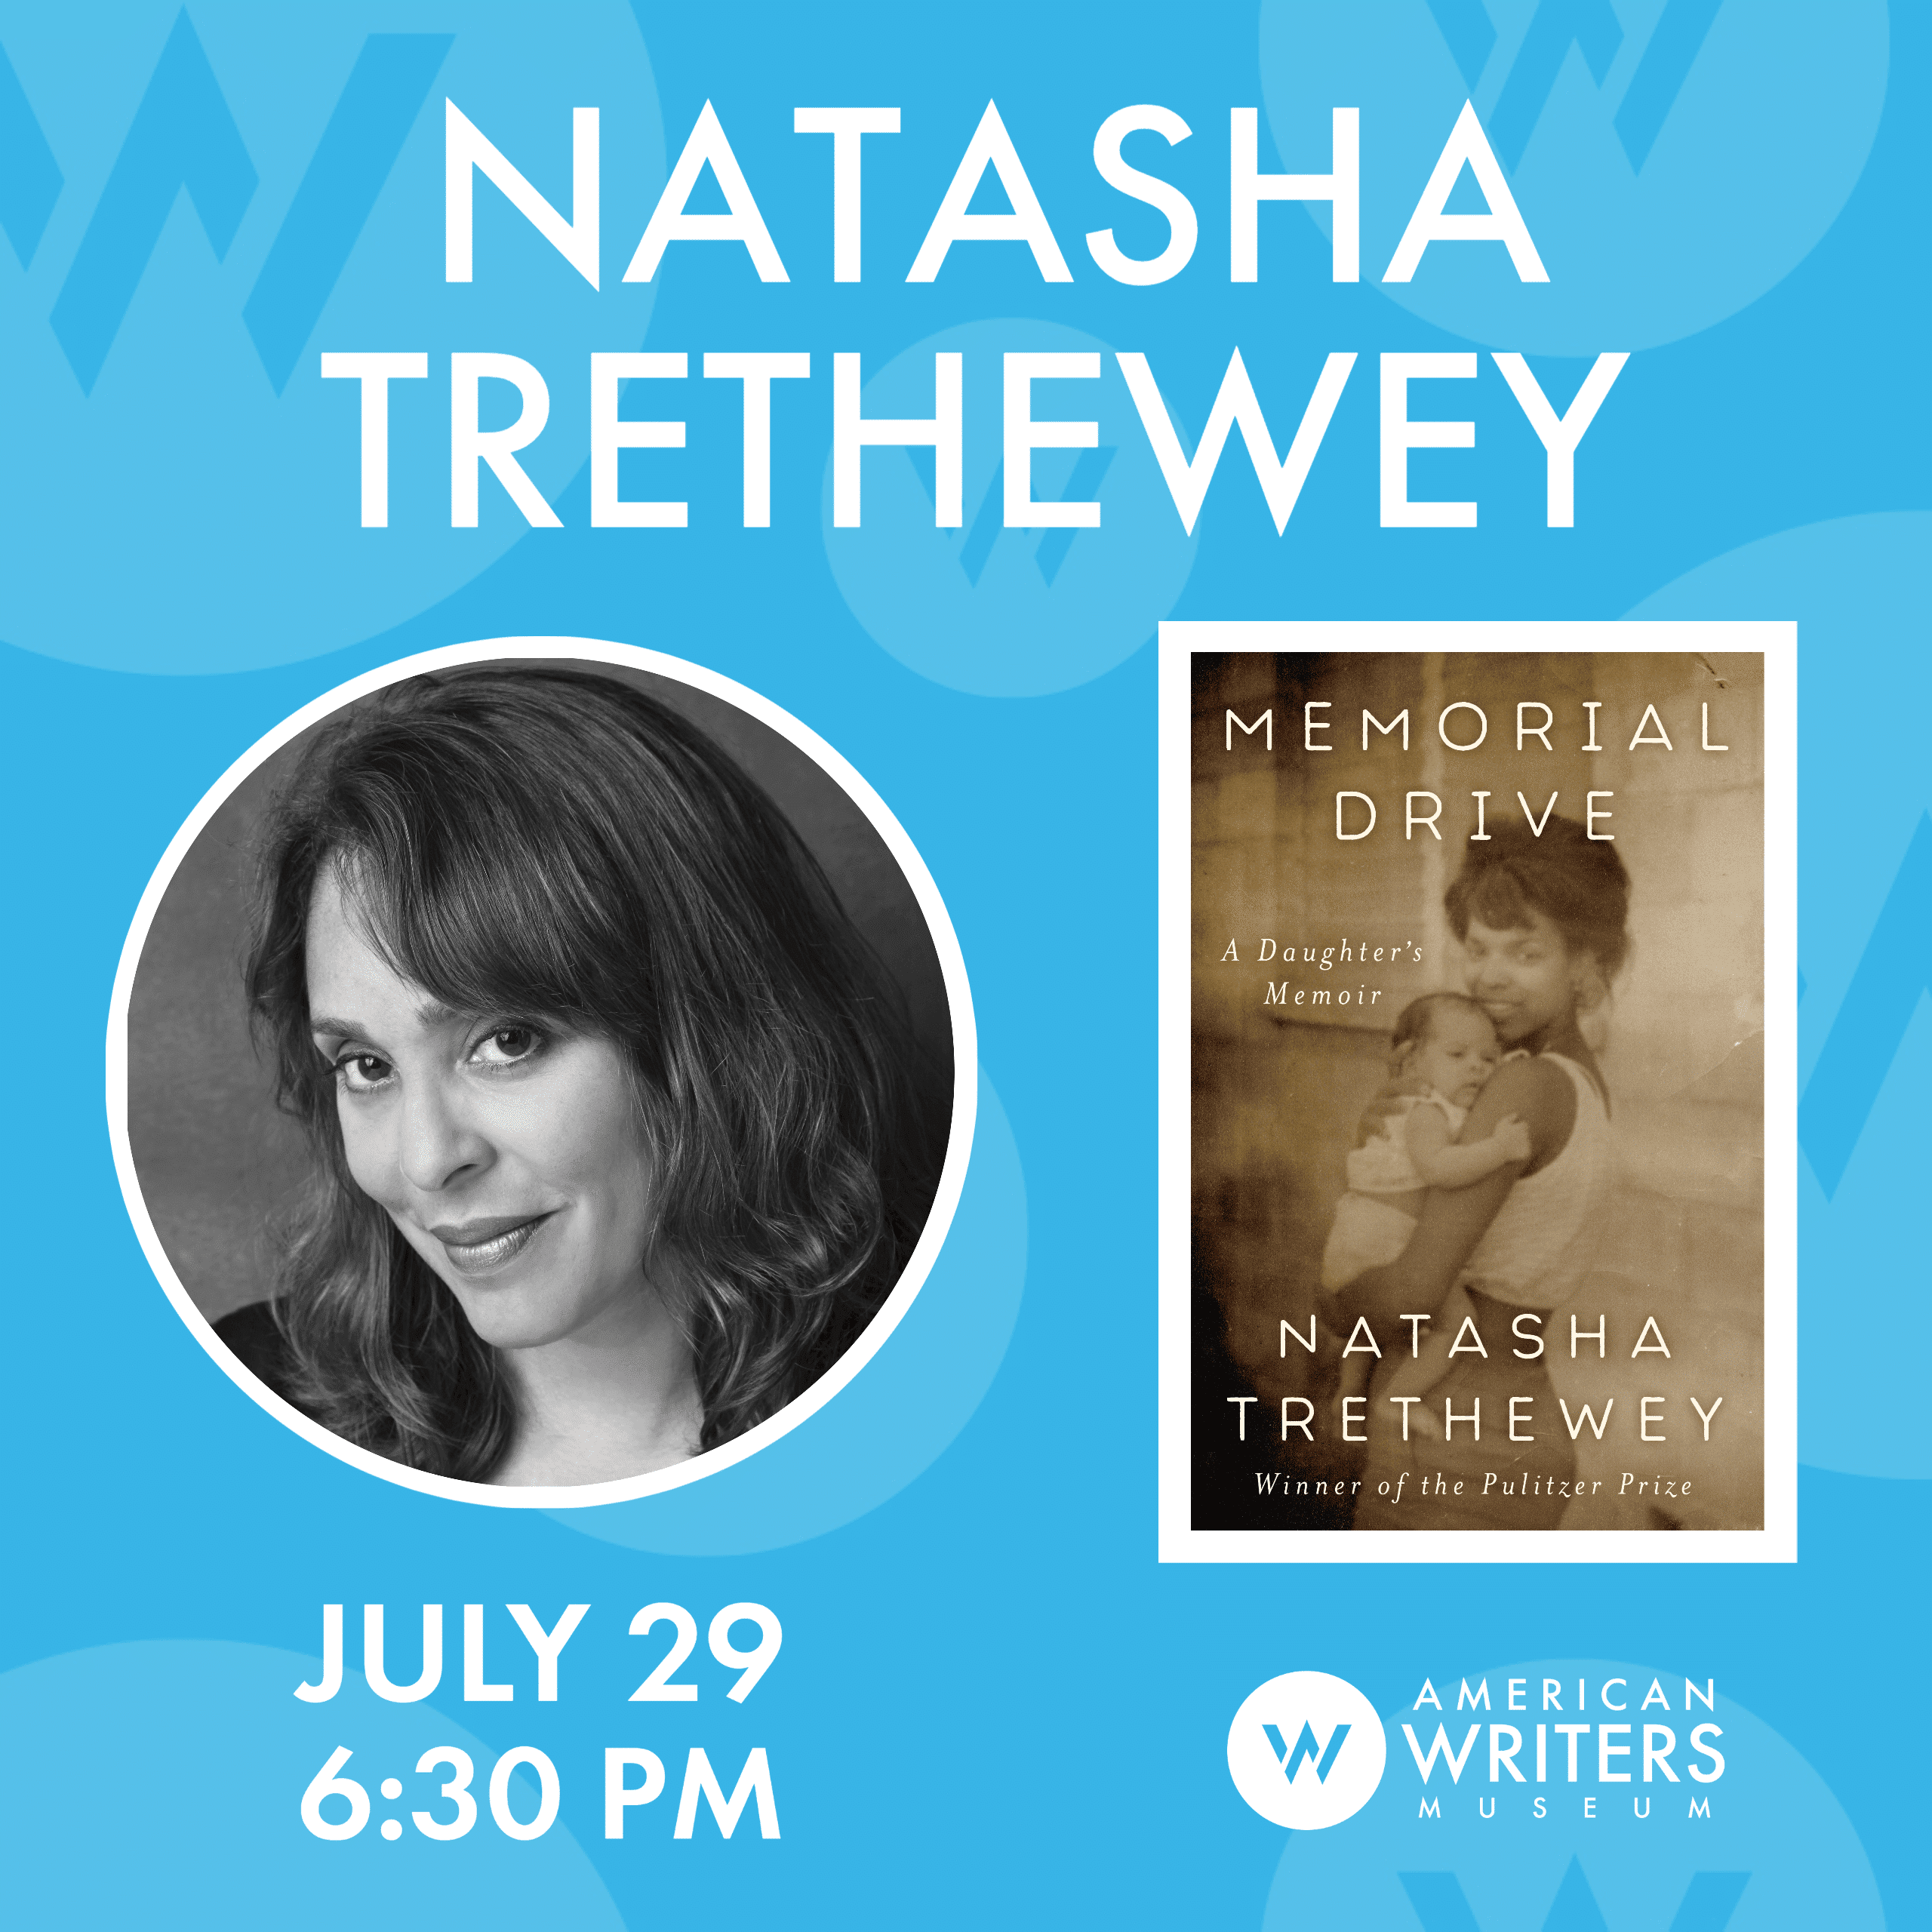 American Writers Museum presents the official book launch of Natasha Trethewey's new memoir Memorial Drive on July 29 at 6:30 pm